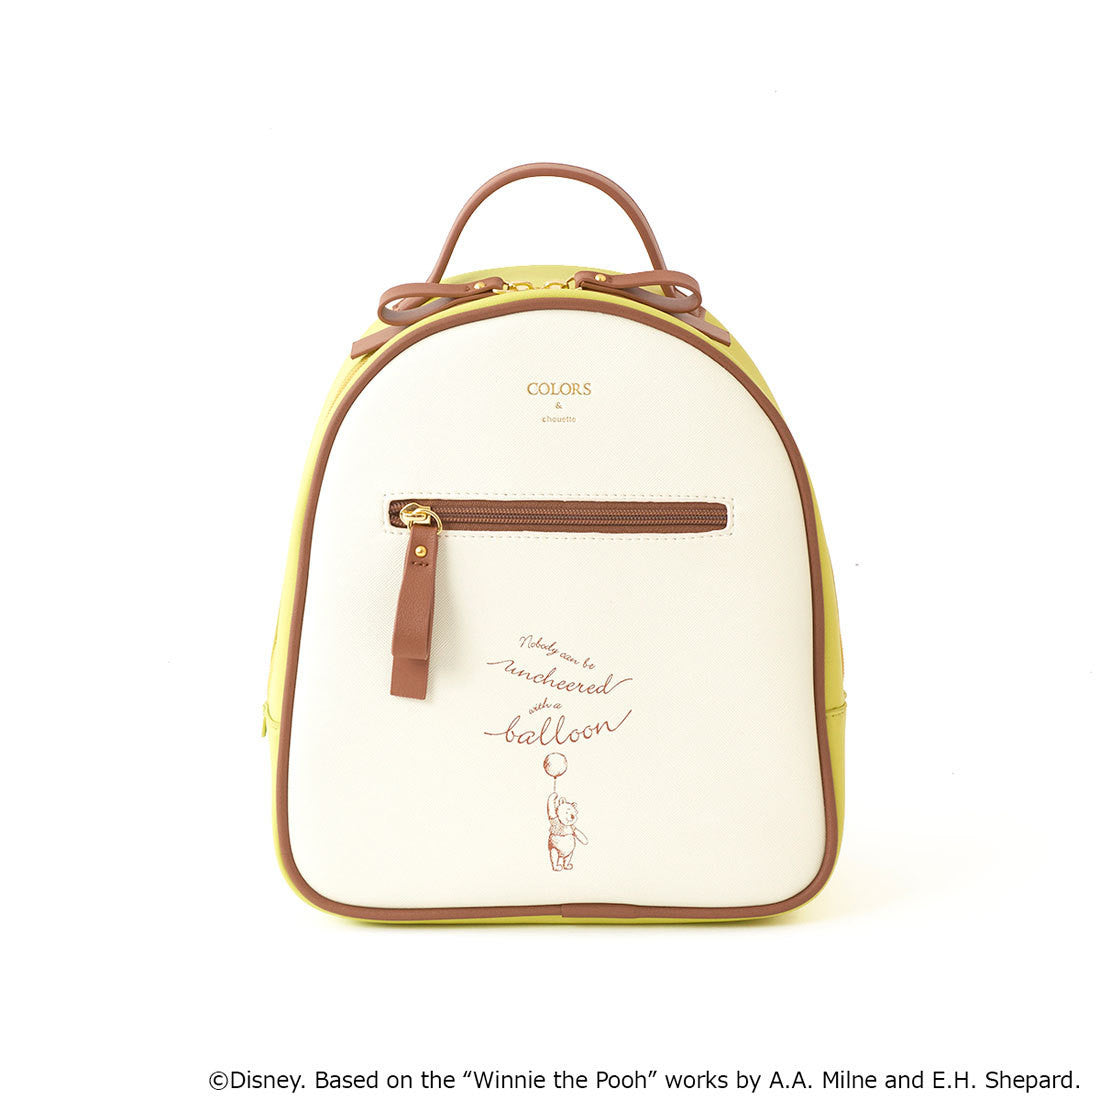 32e31c57d0c Winnie the Pooh Round Backpack Christopher Robin COLORS   chouette Jap –  VeryGoods.JP